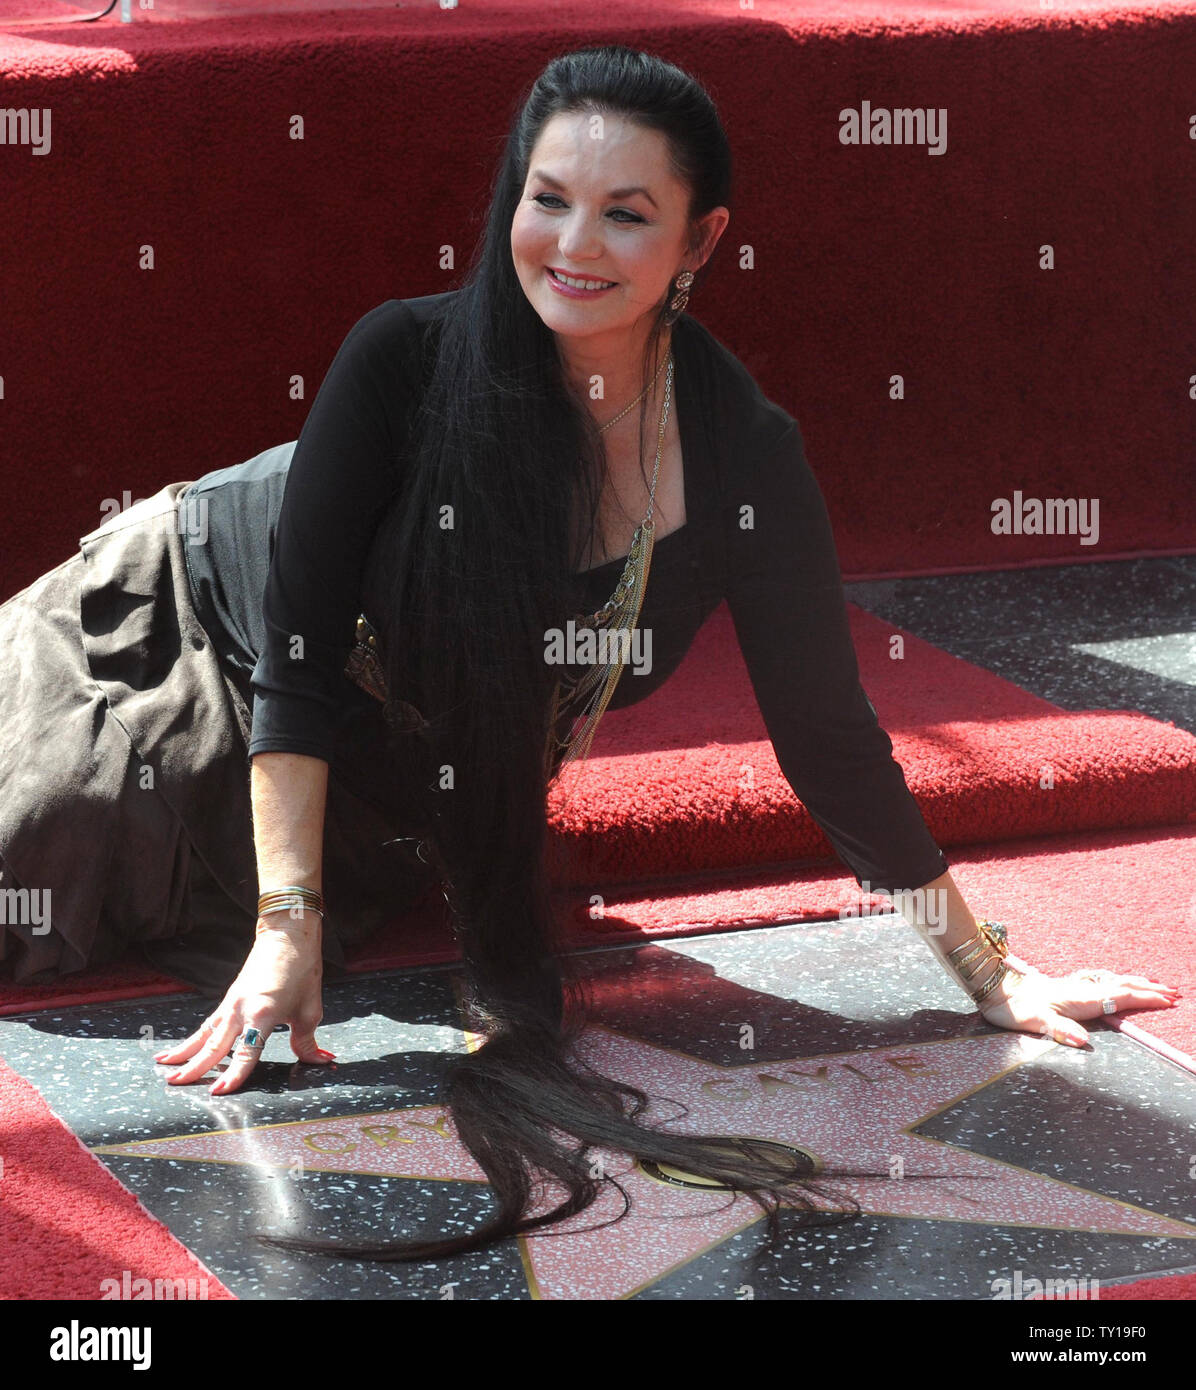 Singer Crystal Gayle places her signature mane atop her star during an unveiling ceremony honoring her with the 2, 390th star on the Hollywood Walk of Fame in Los Angeles on October 2, 2009.     UPI/Jim Ruymen - Stock Image